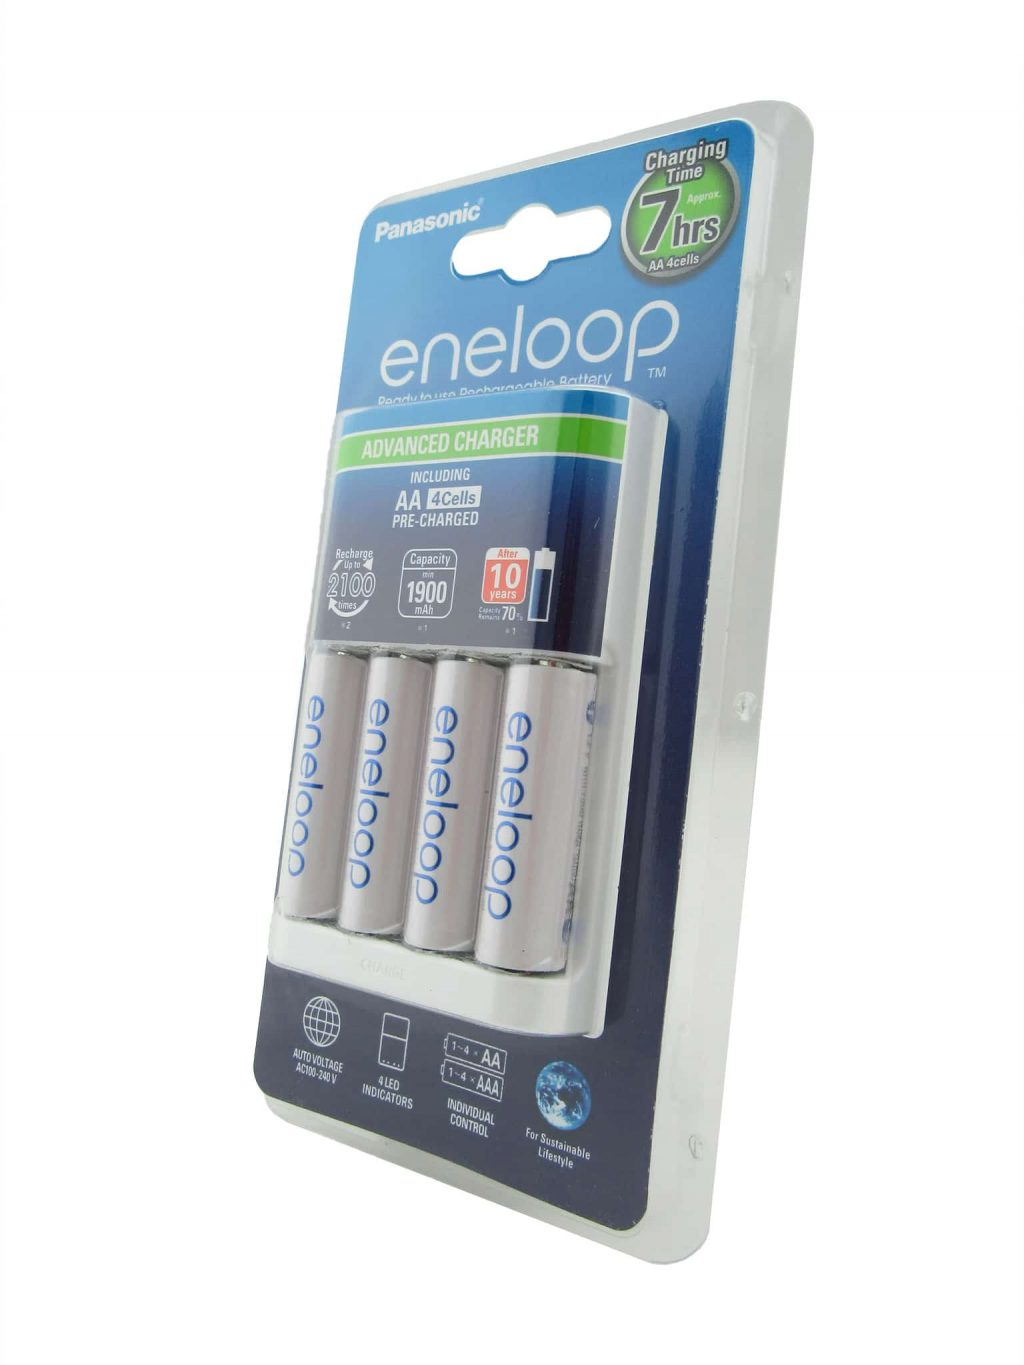 Eneloop charger including AA-size rechargeable batteries